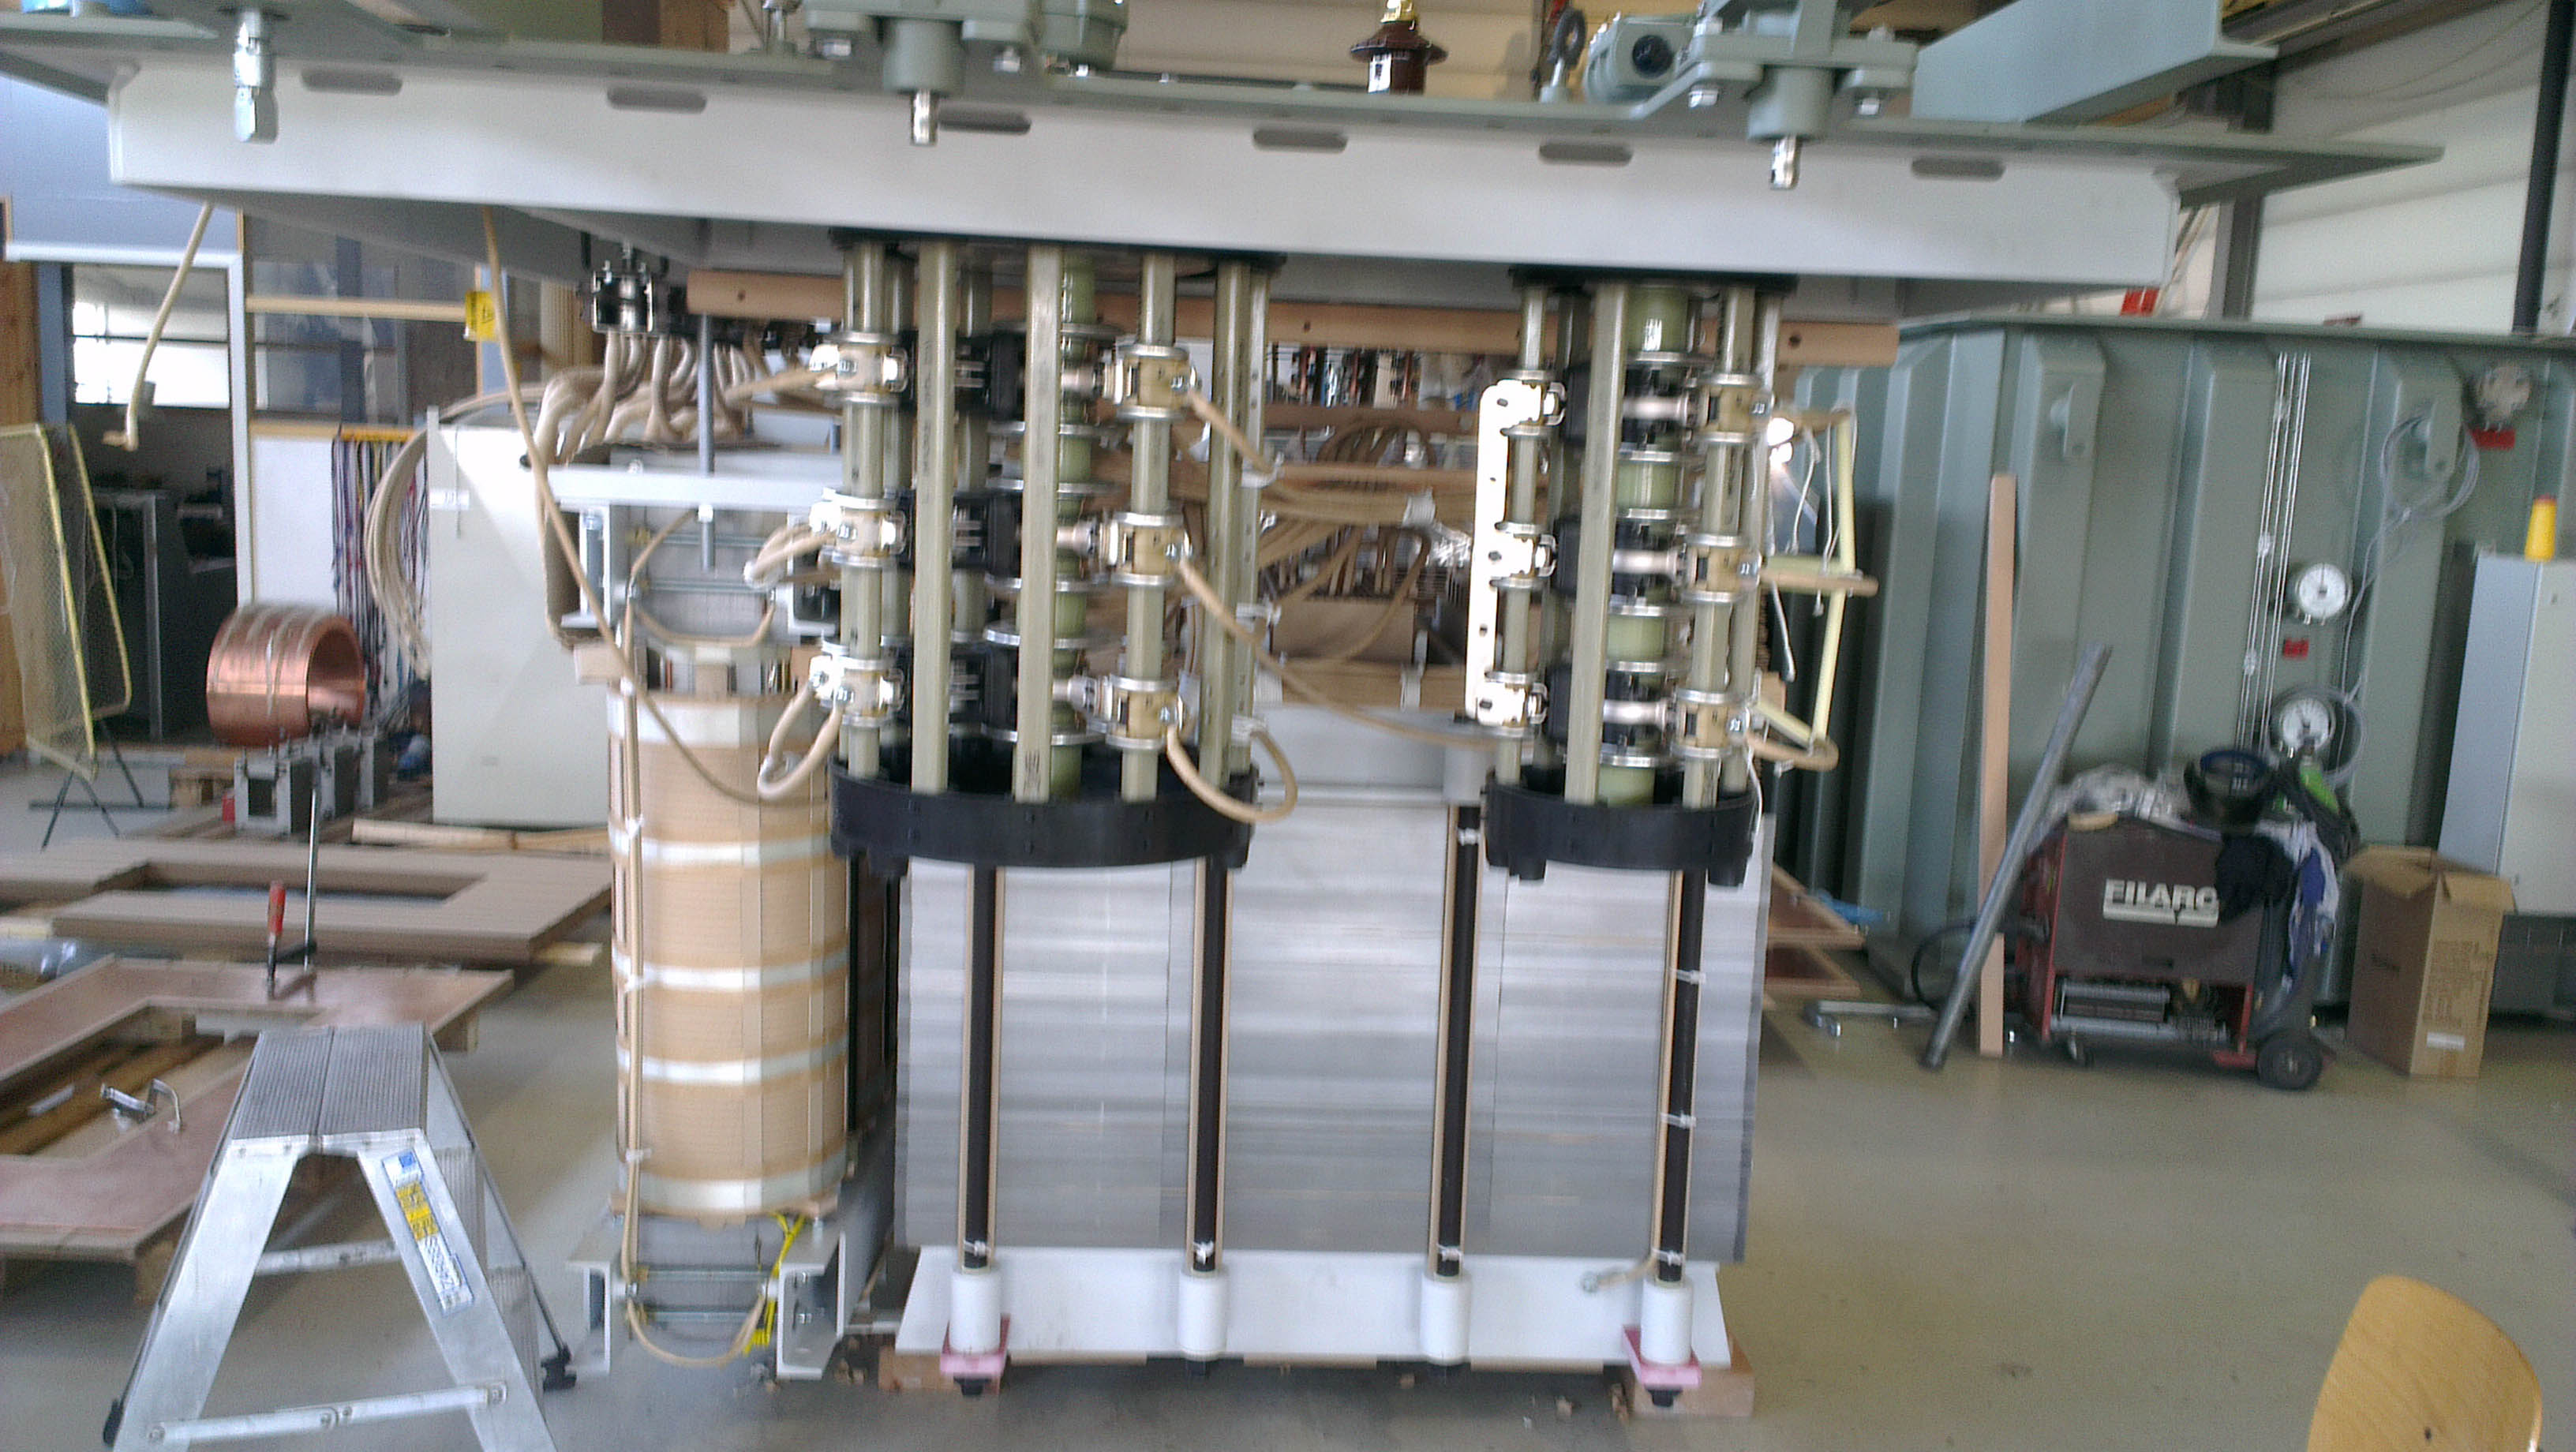 Furnace transformer with serie reactor build in